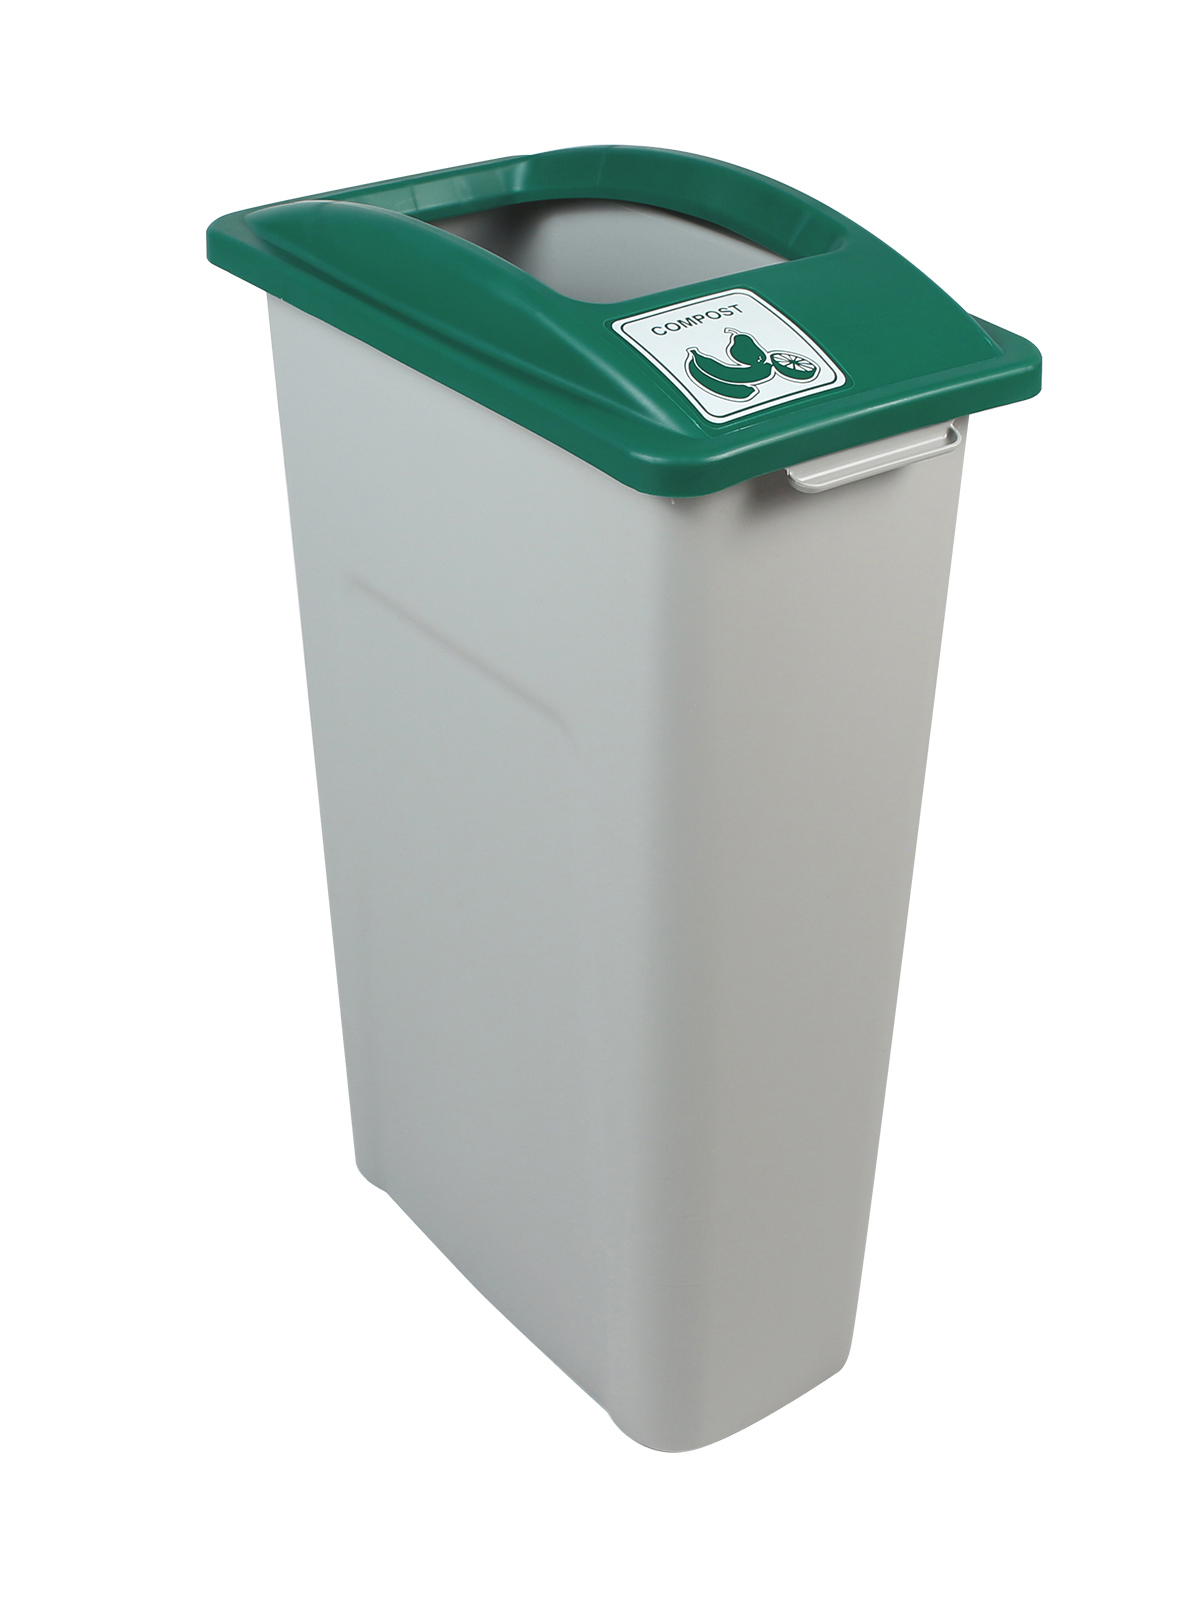 WASTE WATCHER - Single - Compost - Full - Grey-Green